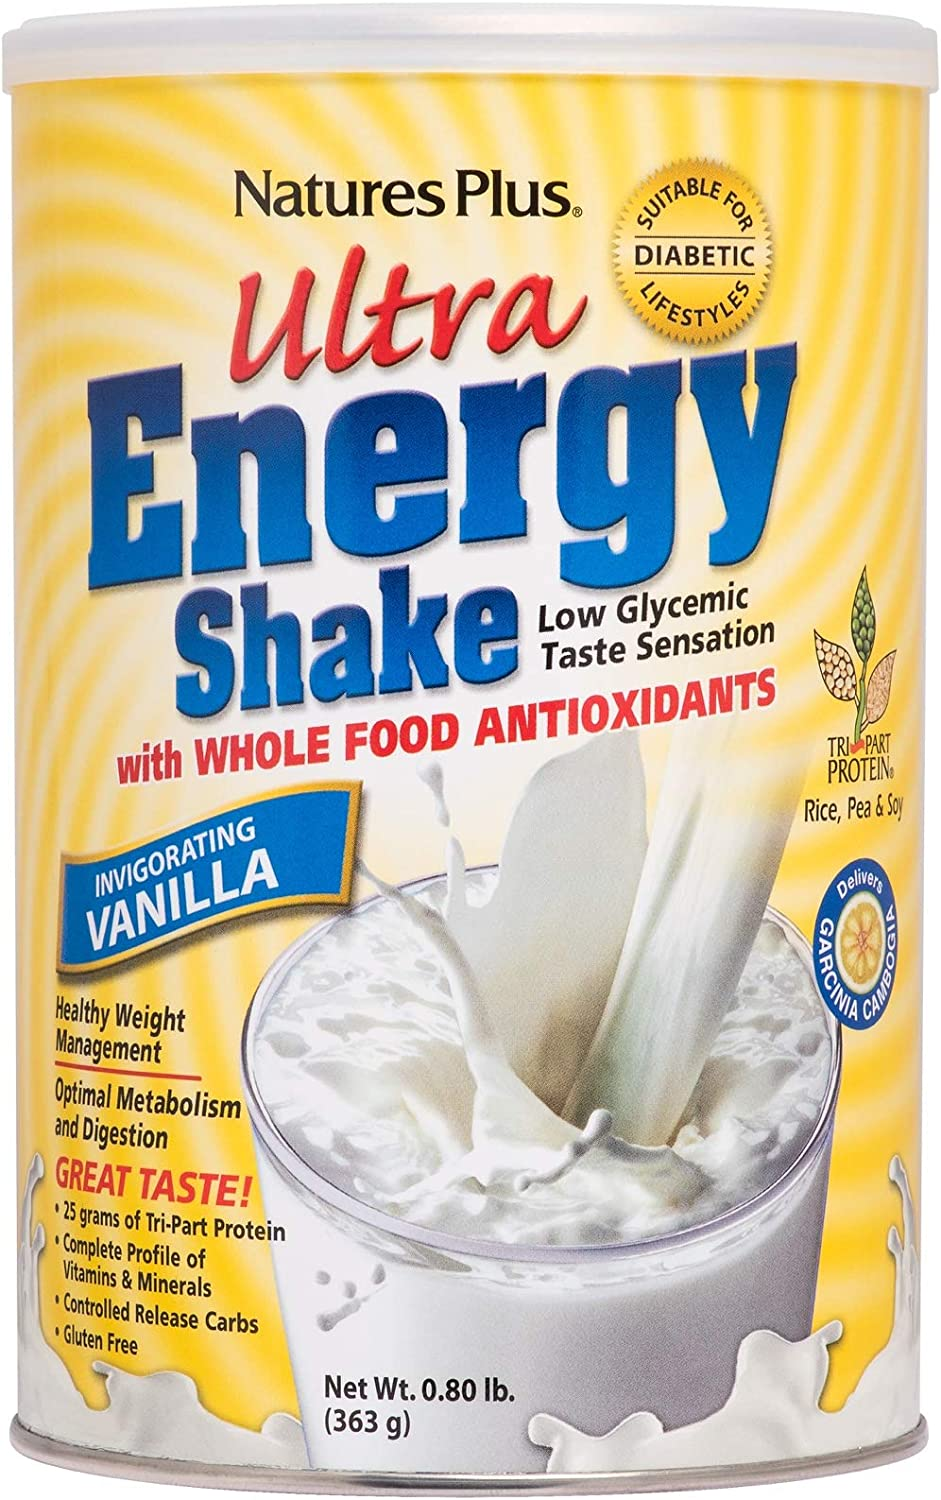 NaturesPlus Ultra Energy Shake – .8 lbs, Vegetarian Protein Powder – Vanilla – Plant-Based – Supports Weight Management, Low-Glycemic Diets Healthy Blood Glucose – Gluten-Free – 11 Servings